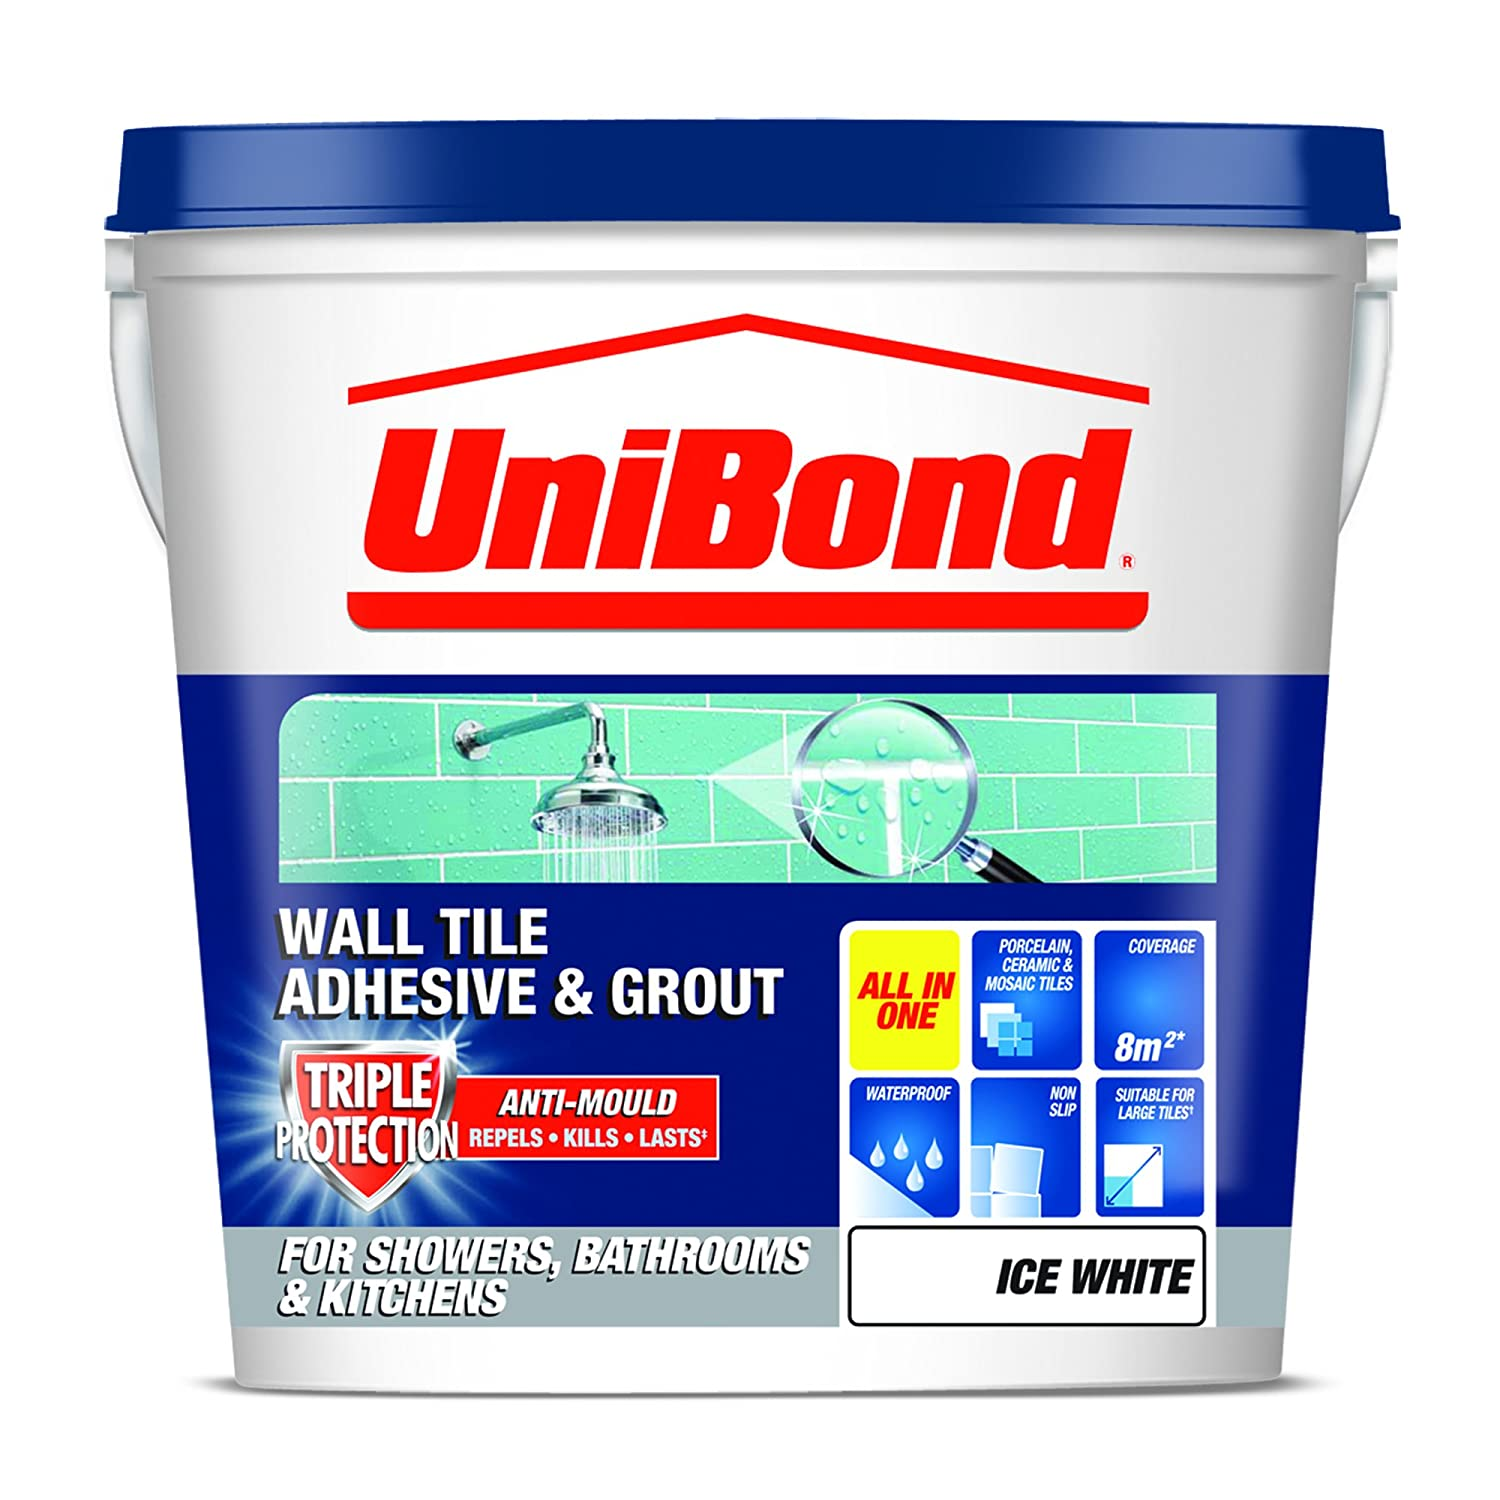 Unibond 1460724 tile on walls anti mould readymix adhesive grout unibond 1460724 tile on walls anti mould readymix adhesive grout trade amazon dailygadgetfo Gallery